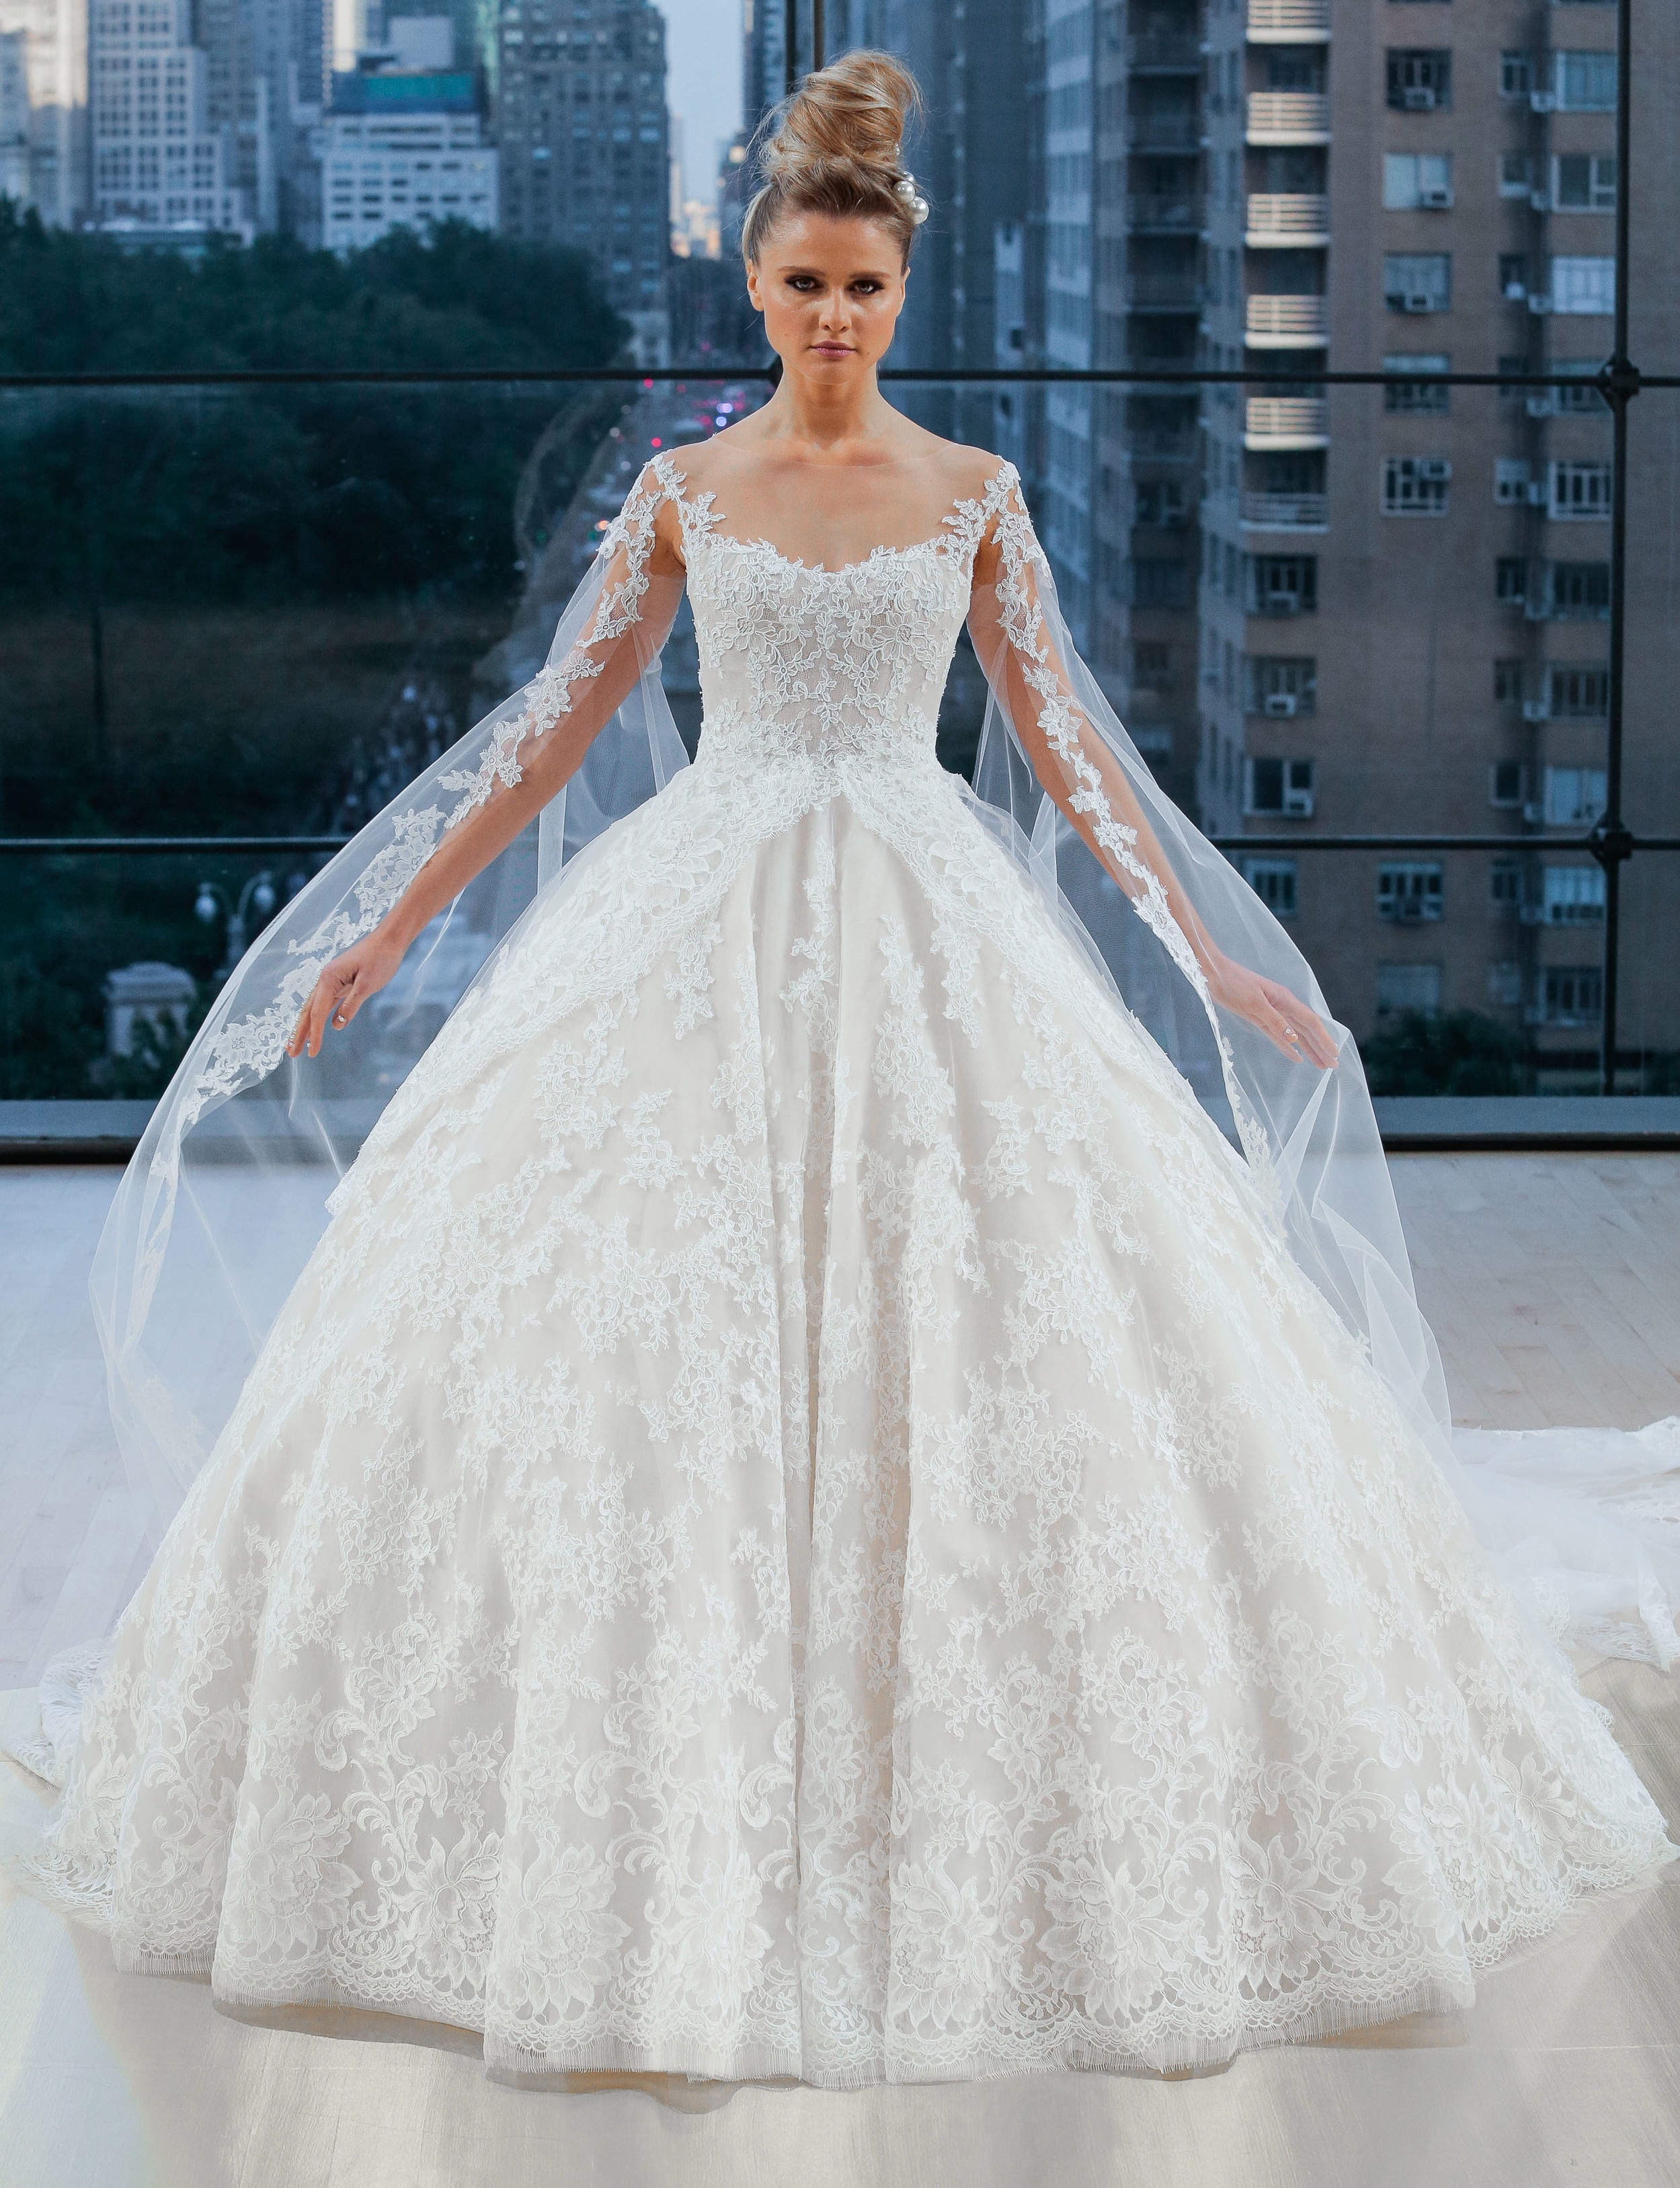 Bridal Fall 2018 Couture   VANDERBILT    INQUIRE